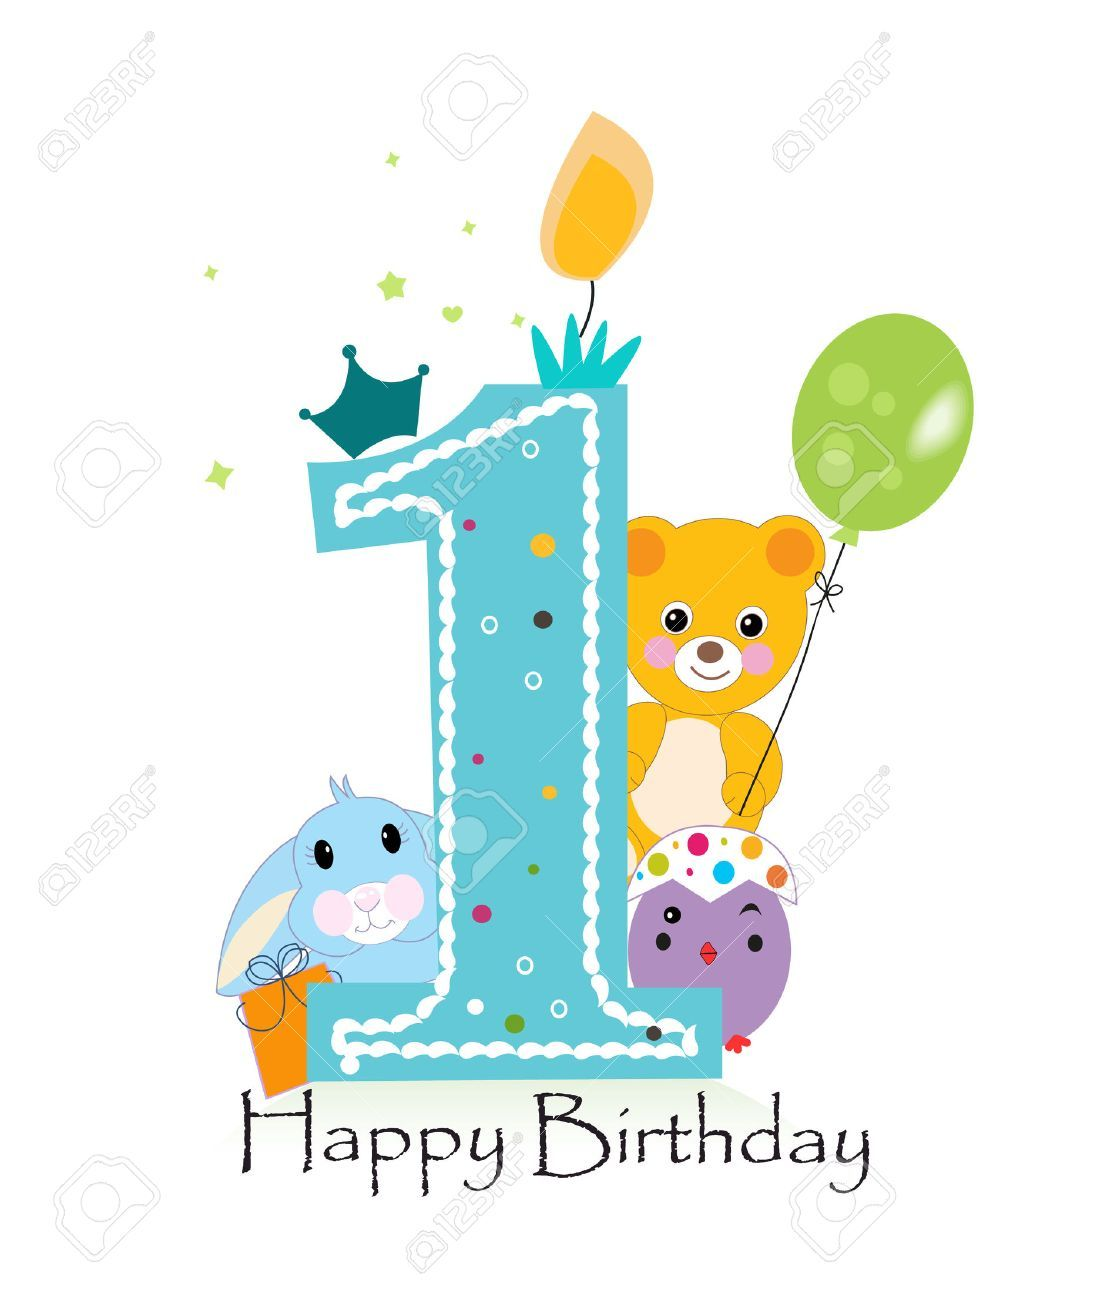 Stock Vector Happy first birthday, First birthday wishes